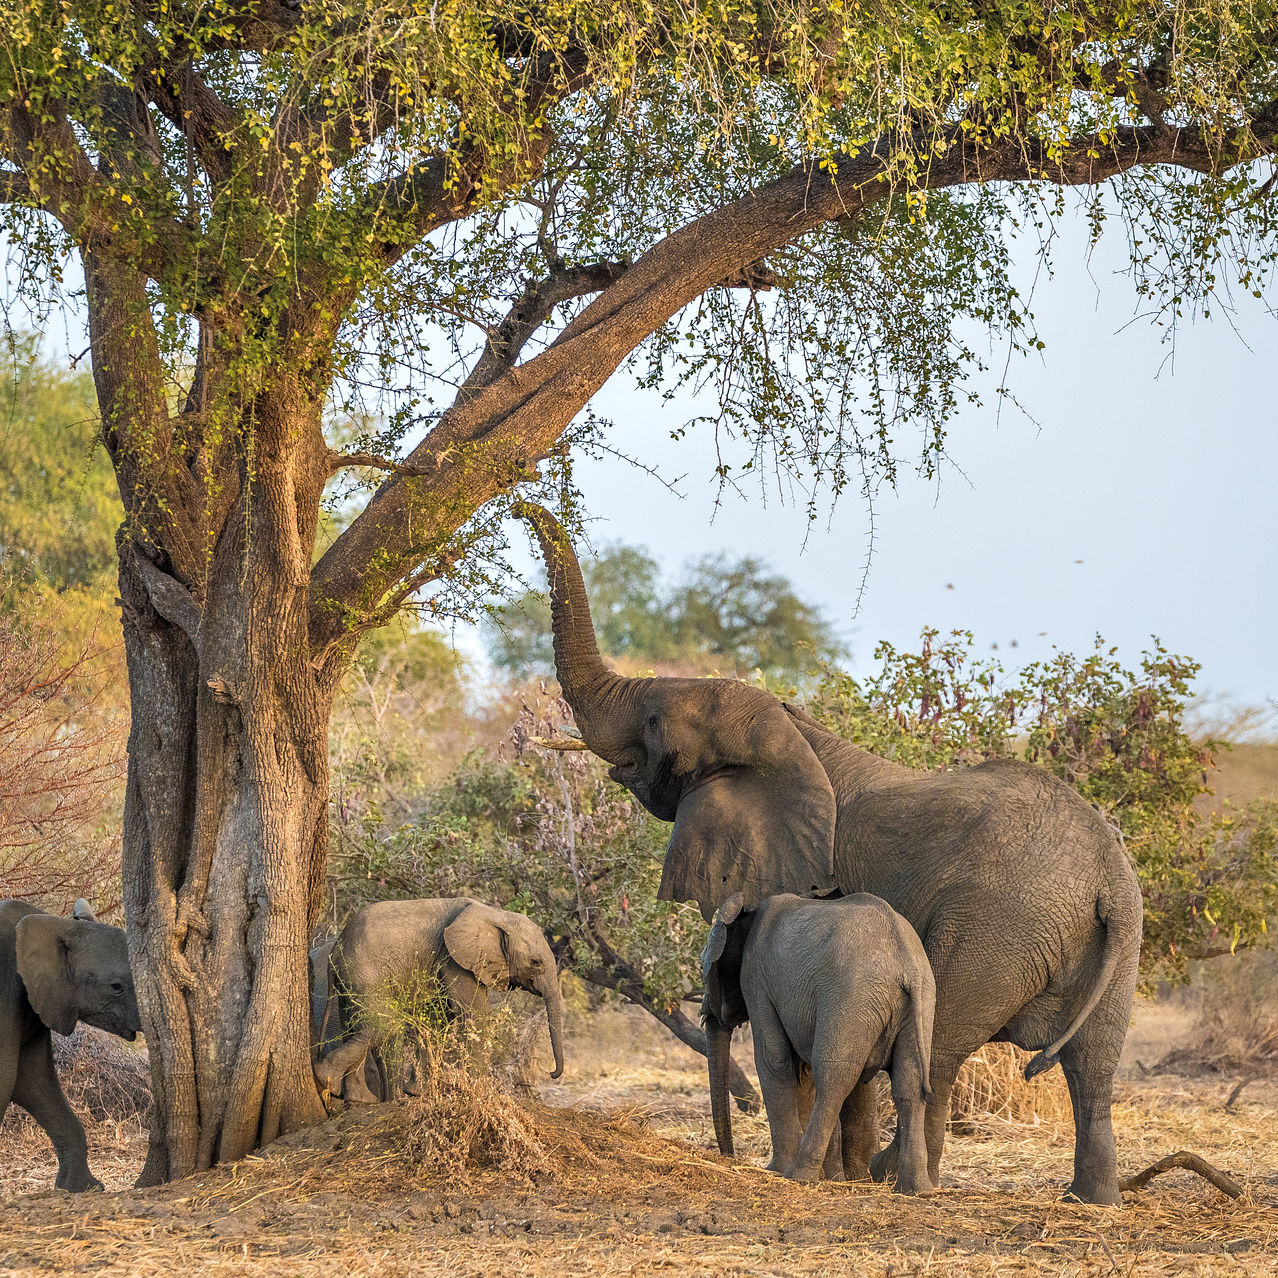 Zakouma National Park in Chad, one of the 15 parks and reserves currently managed by African Parks.